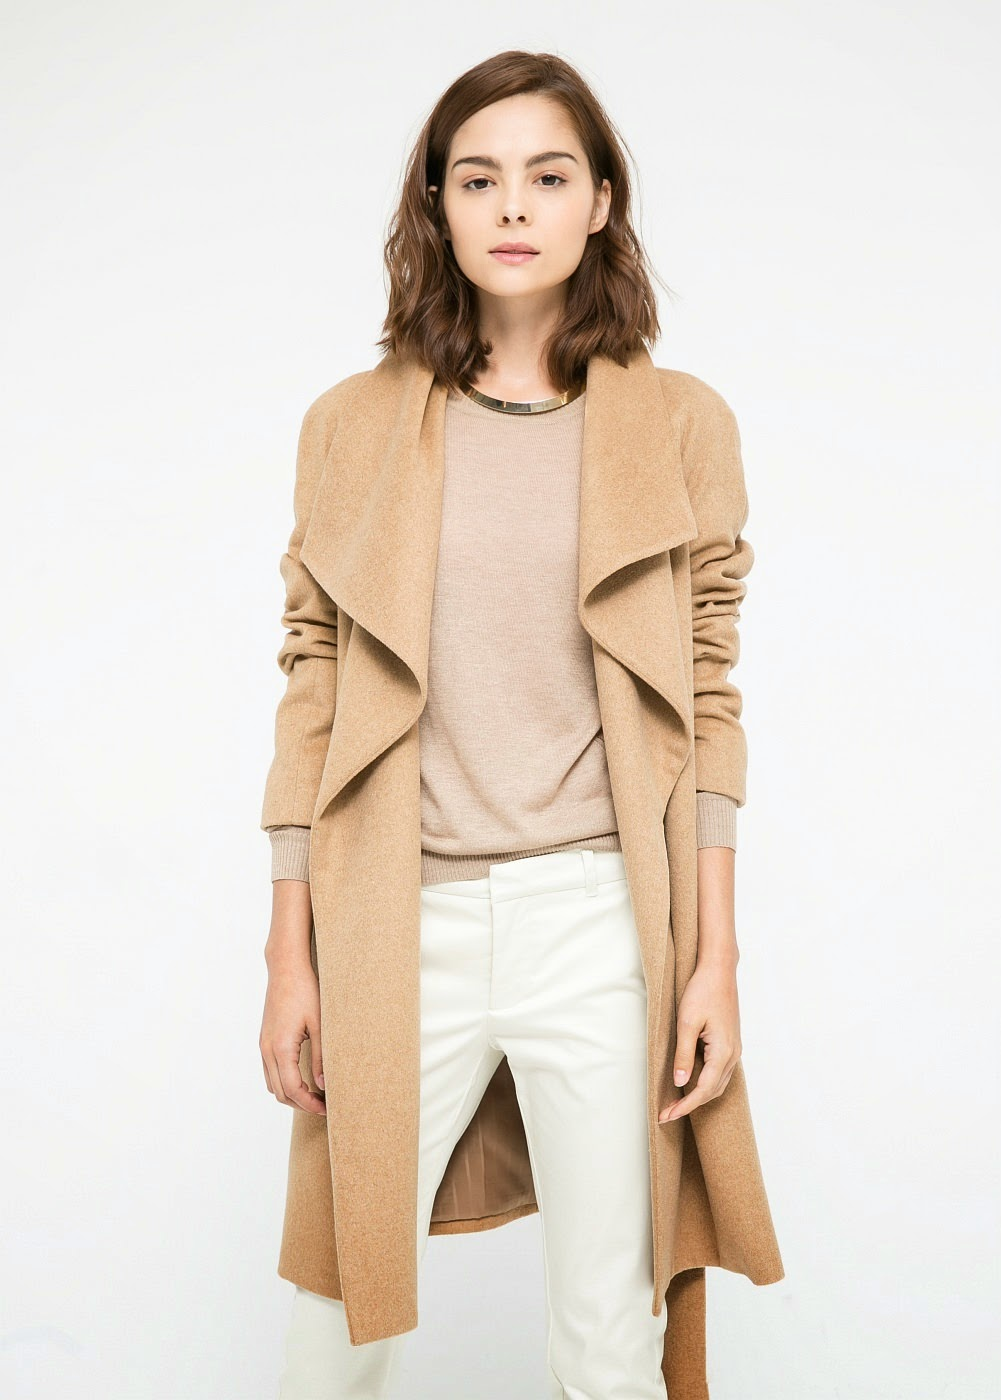 beautiful me plus you: Camel Coat Trend Autumn Winter 2014